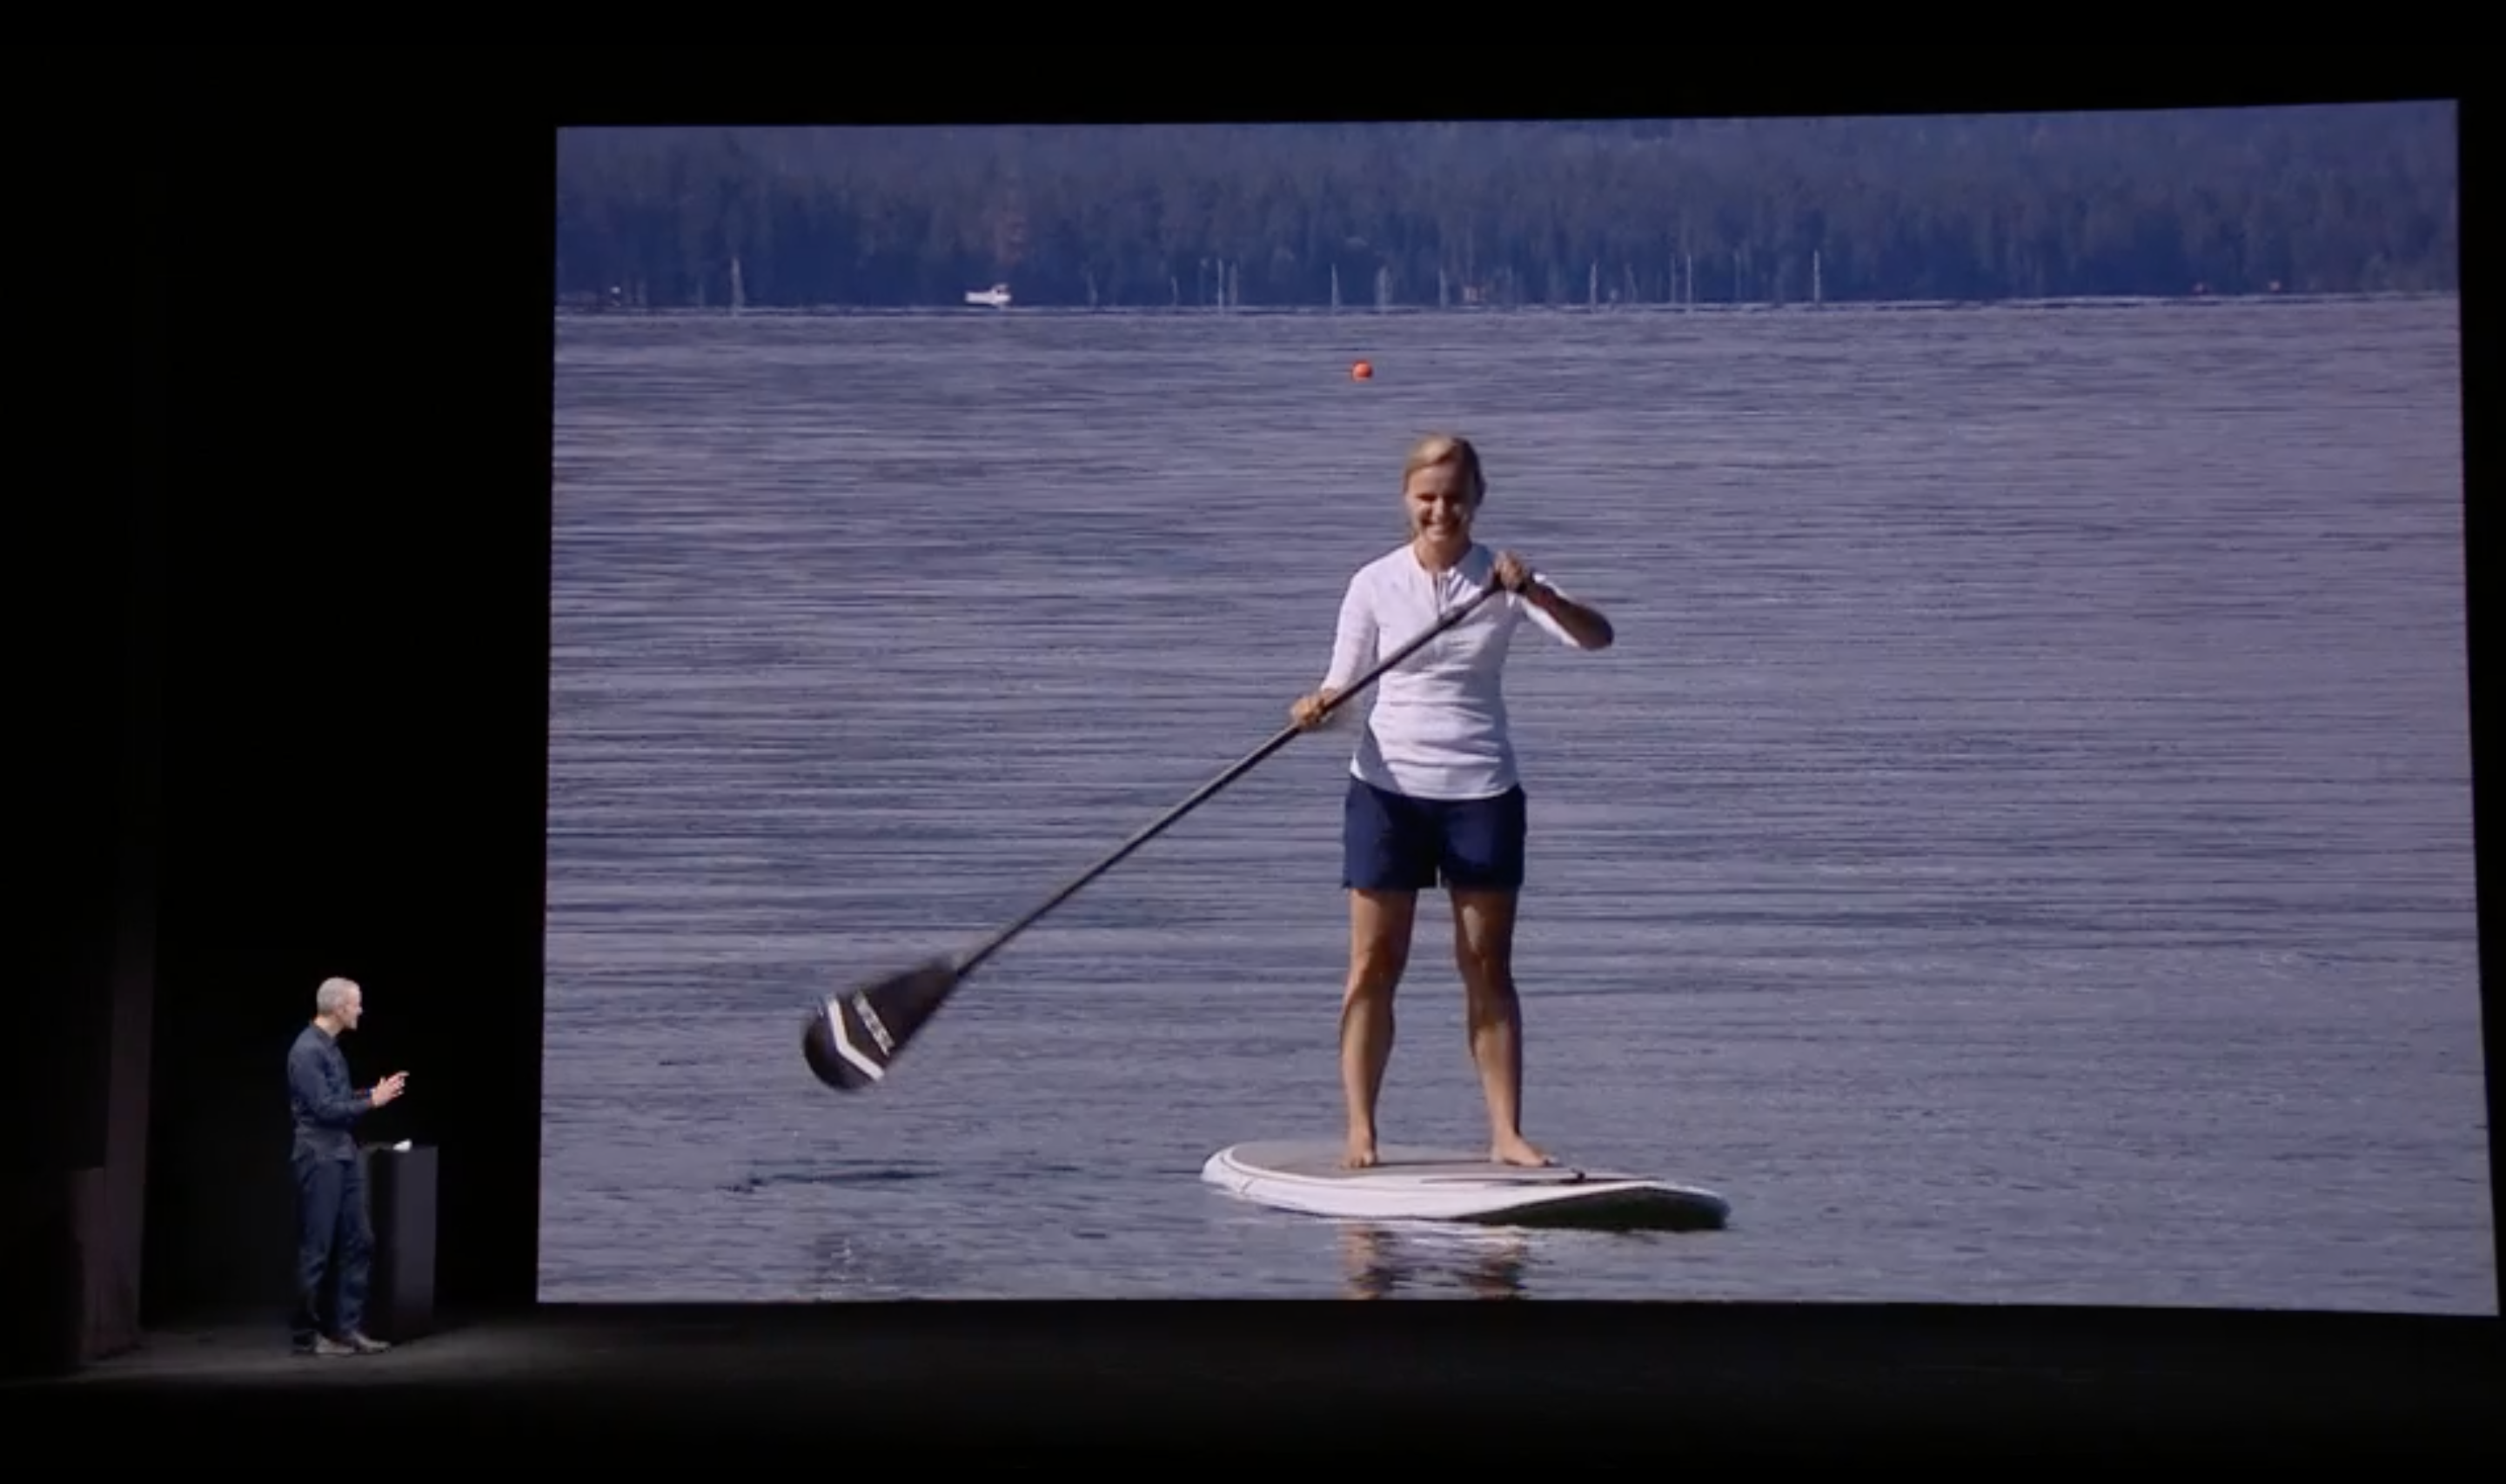 Apple Watch 3 paddleboard demo